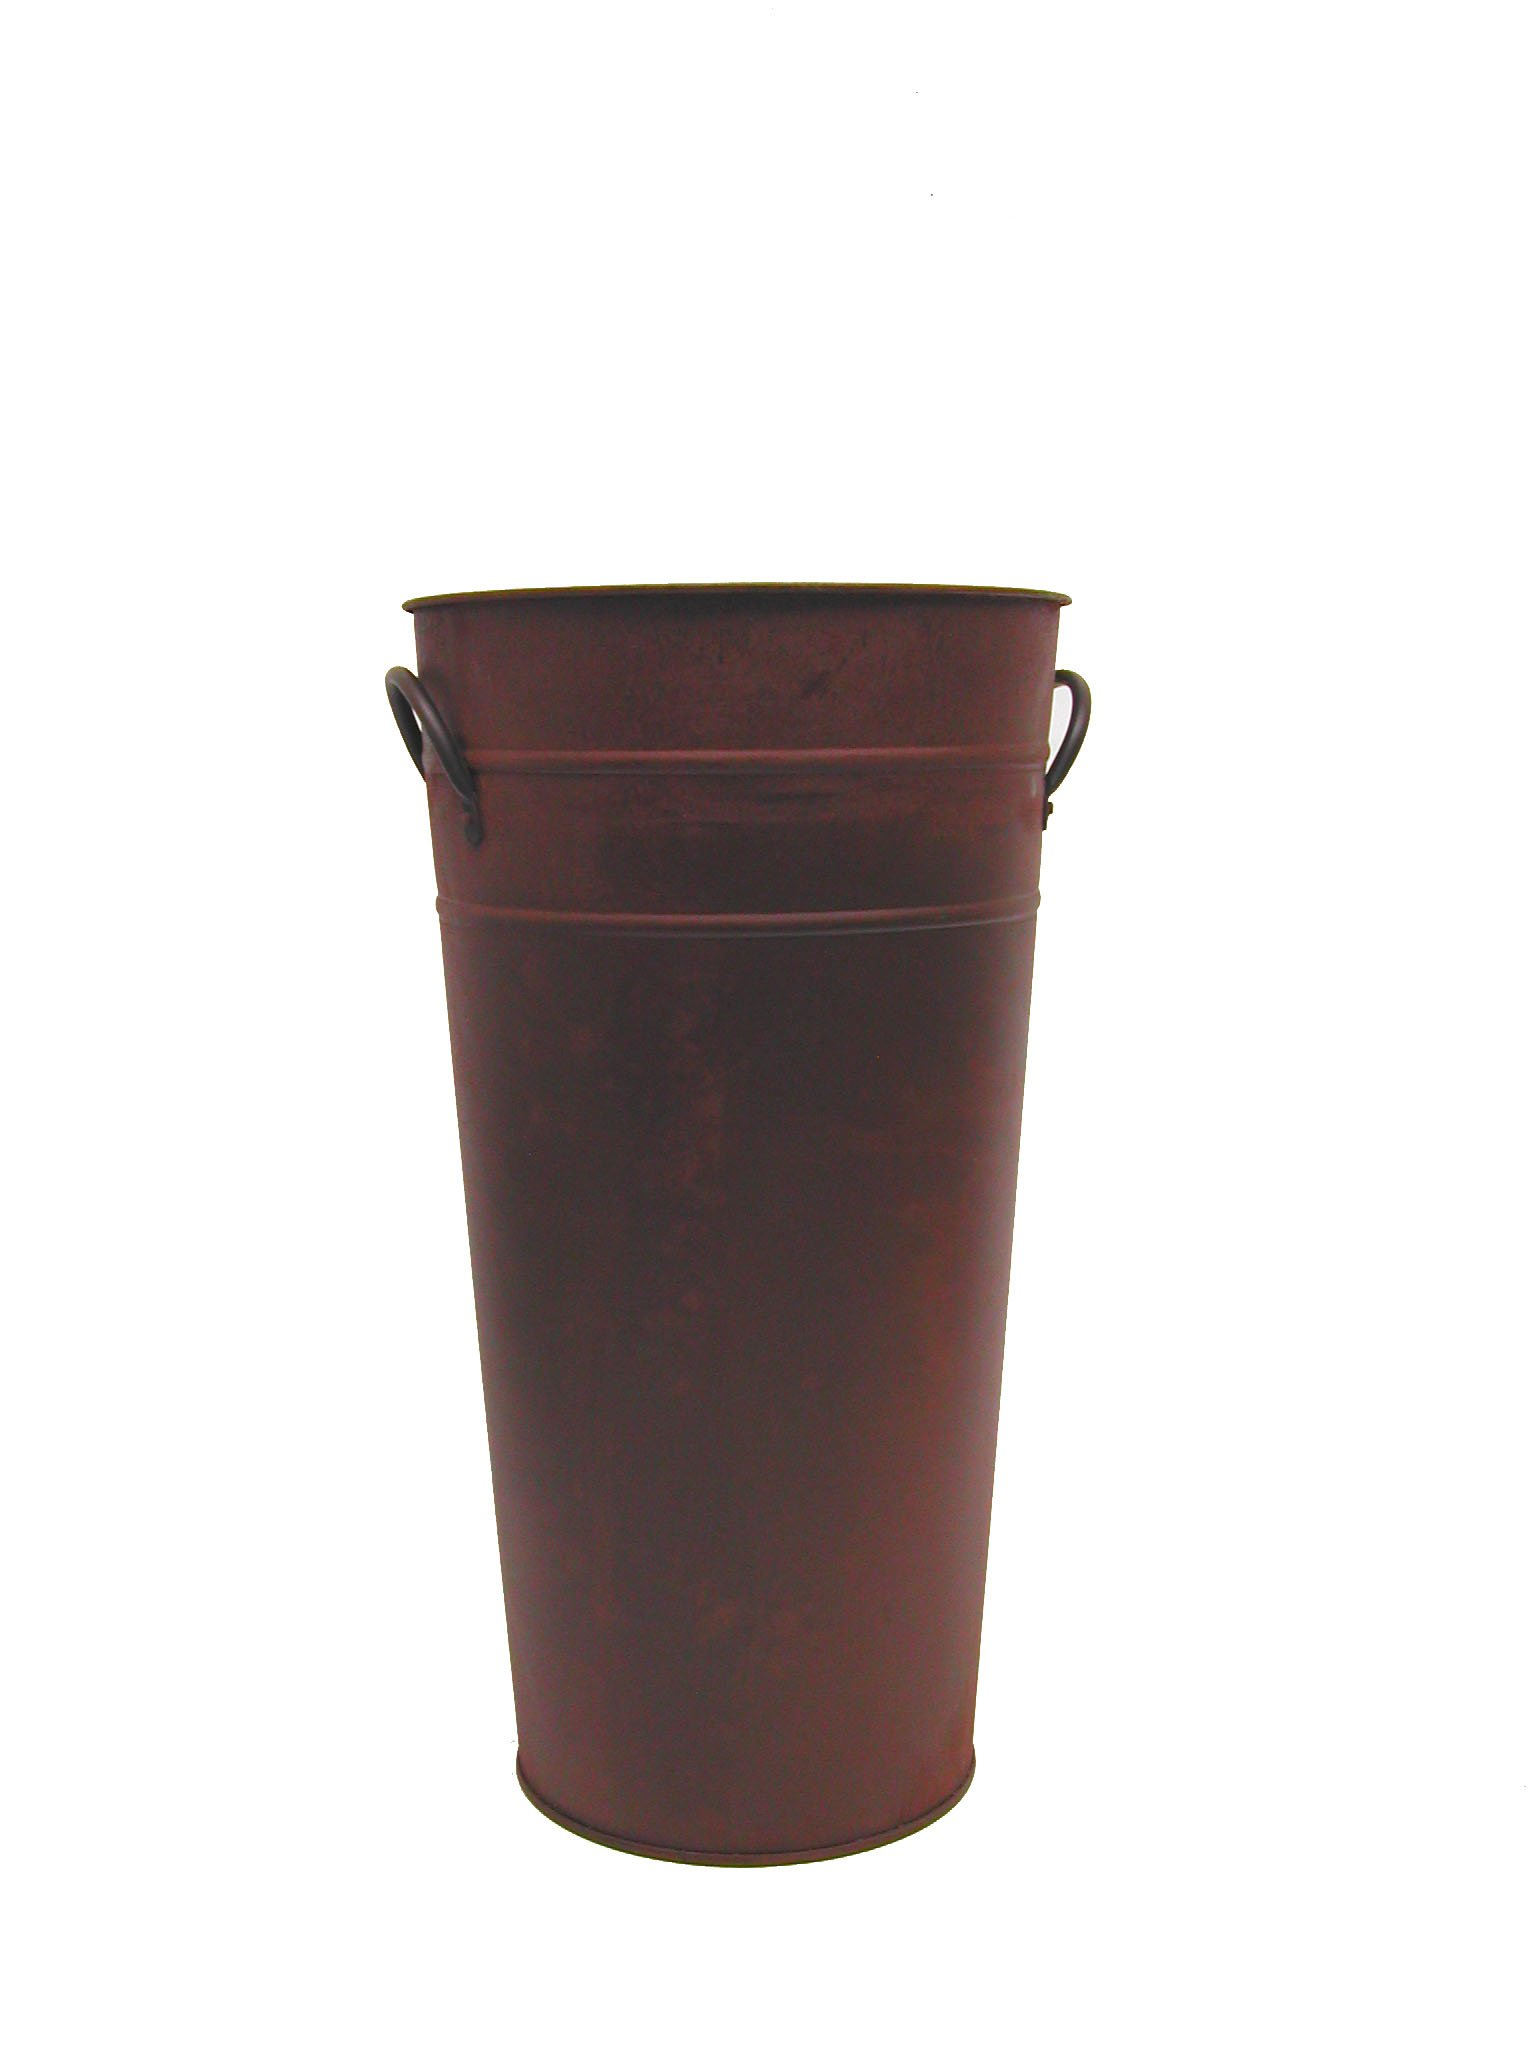 Craft Outlet Rustic Flower Bucket, 15-Inch